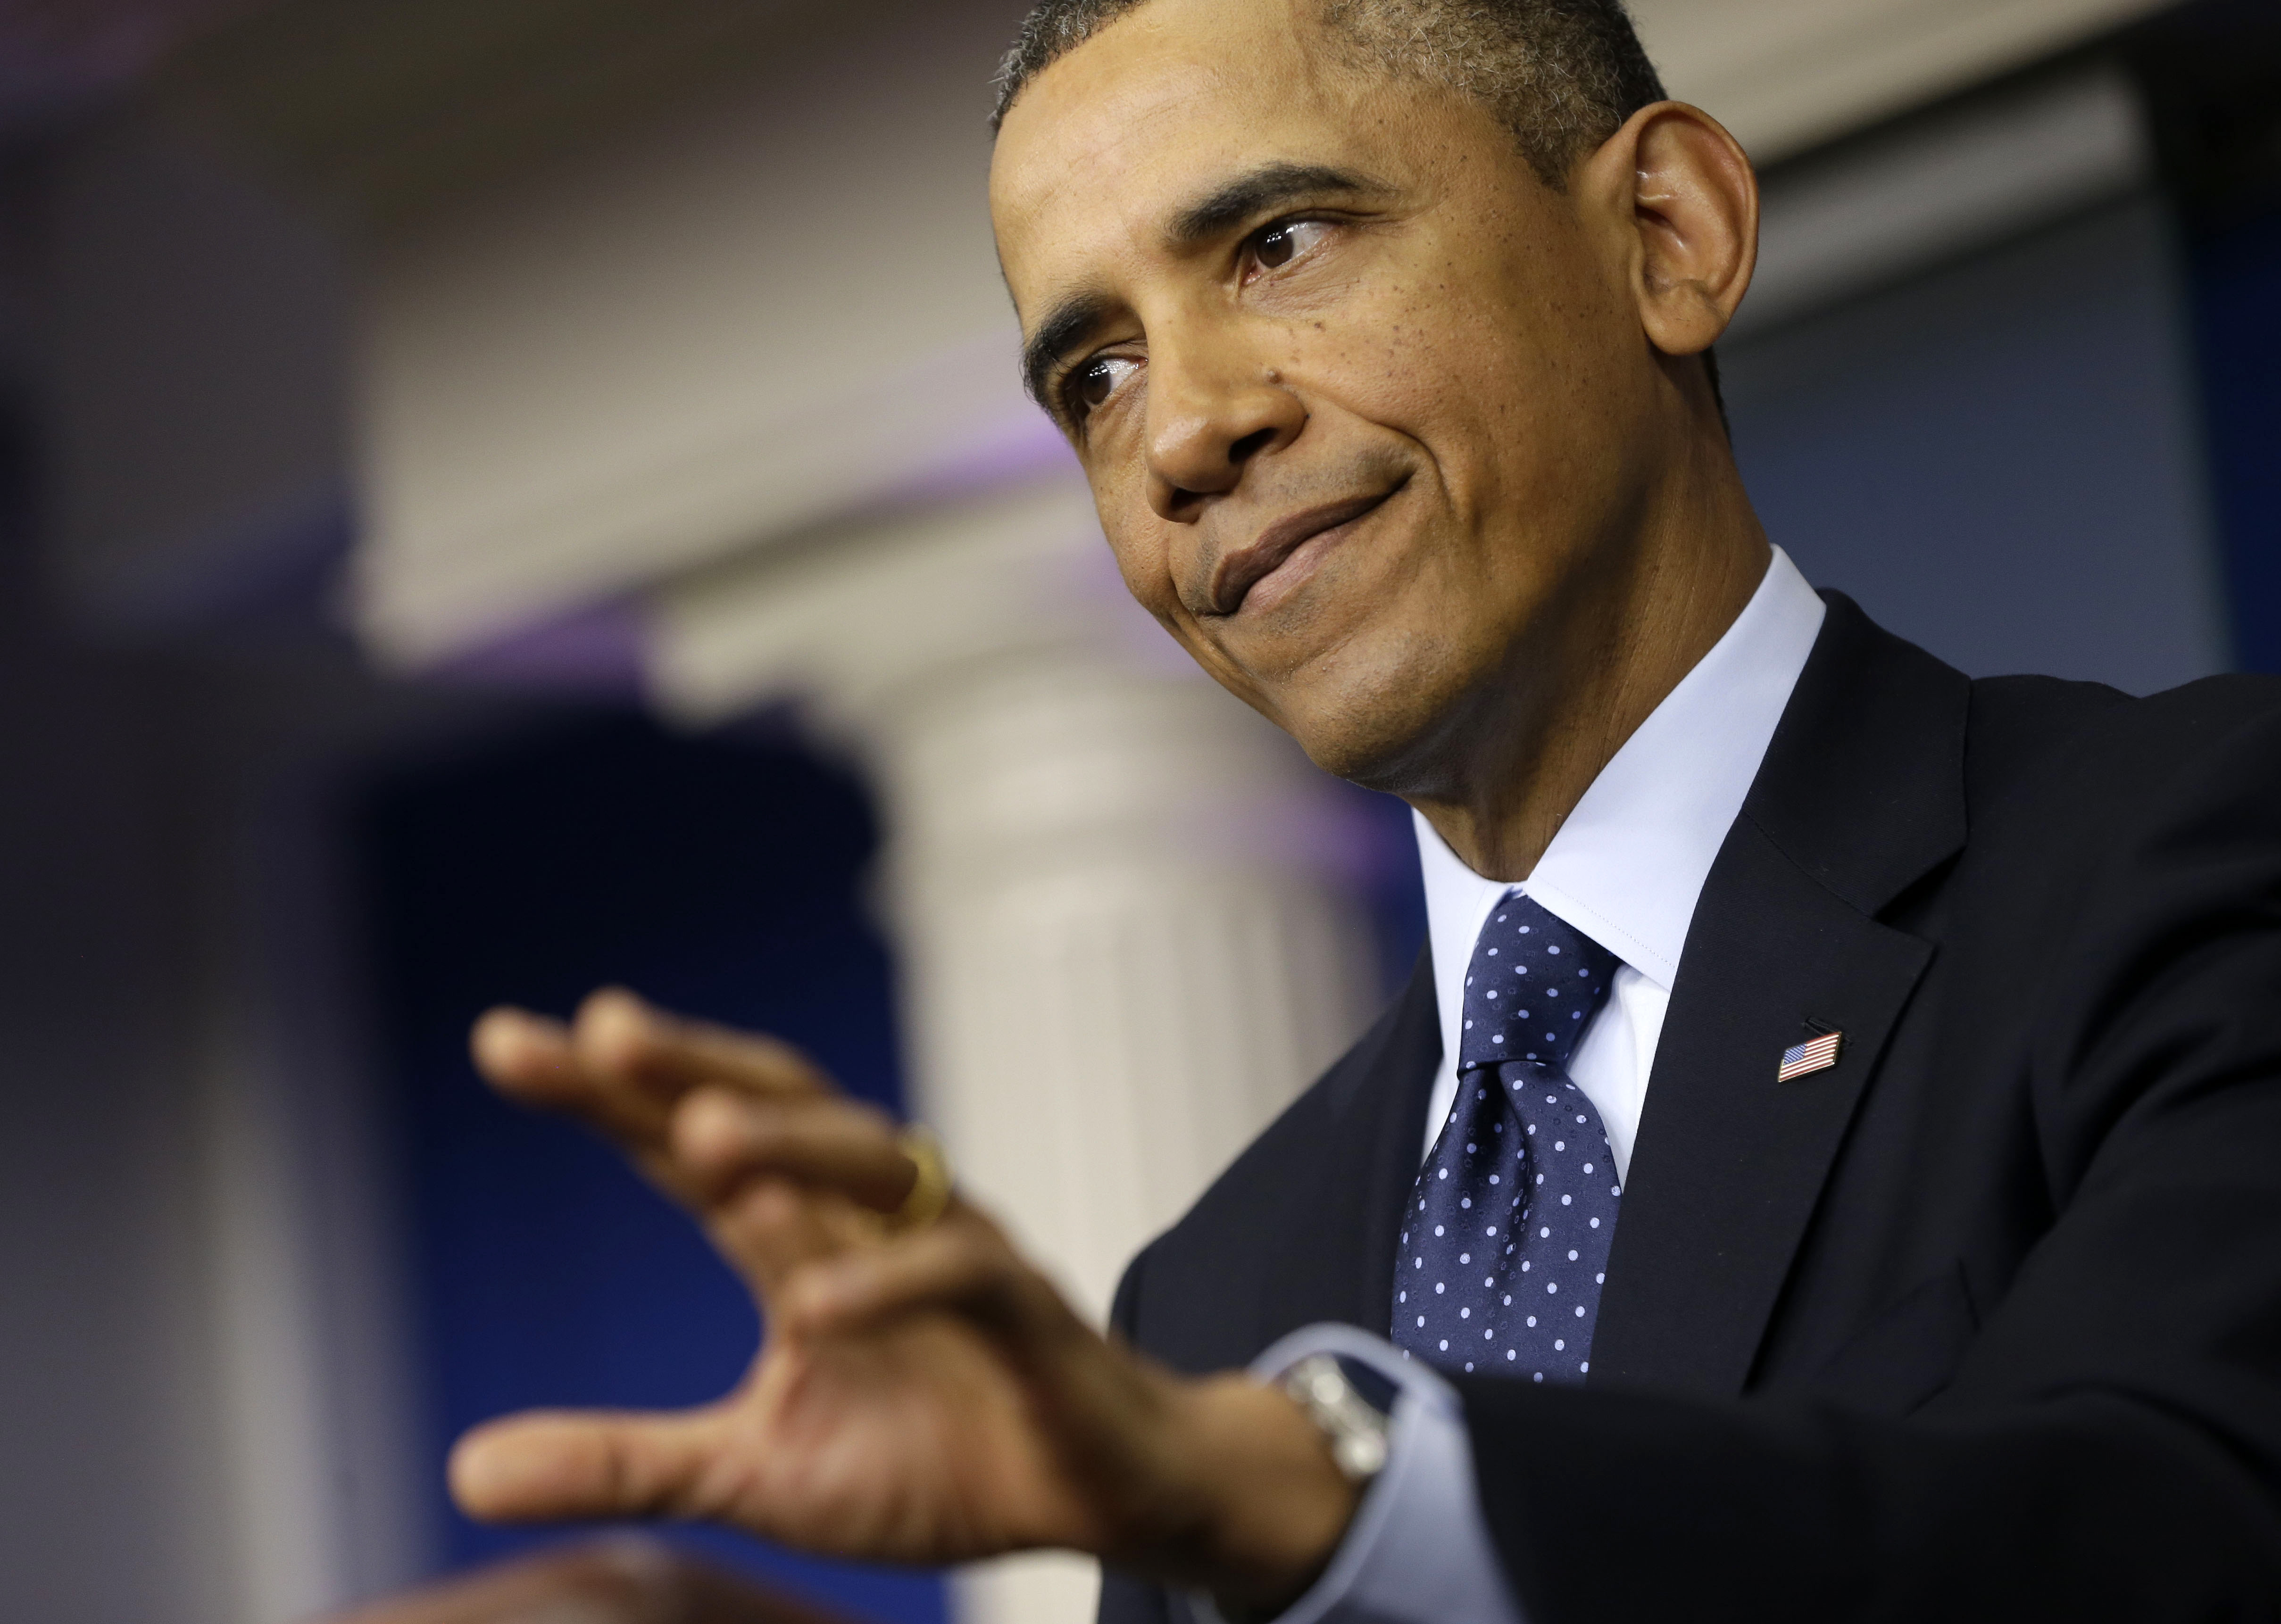 finally,, president, obama, takes, a, bold, stand, against, climate, change, deniers,